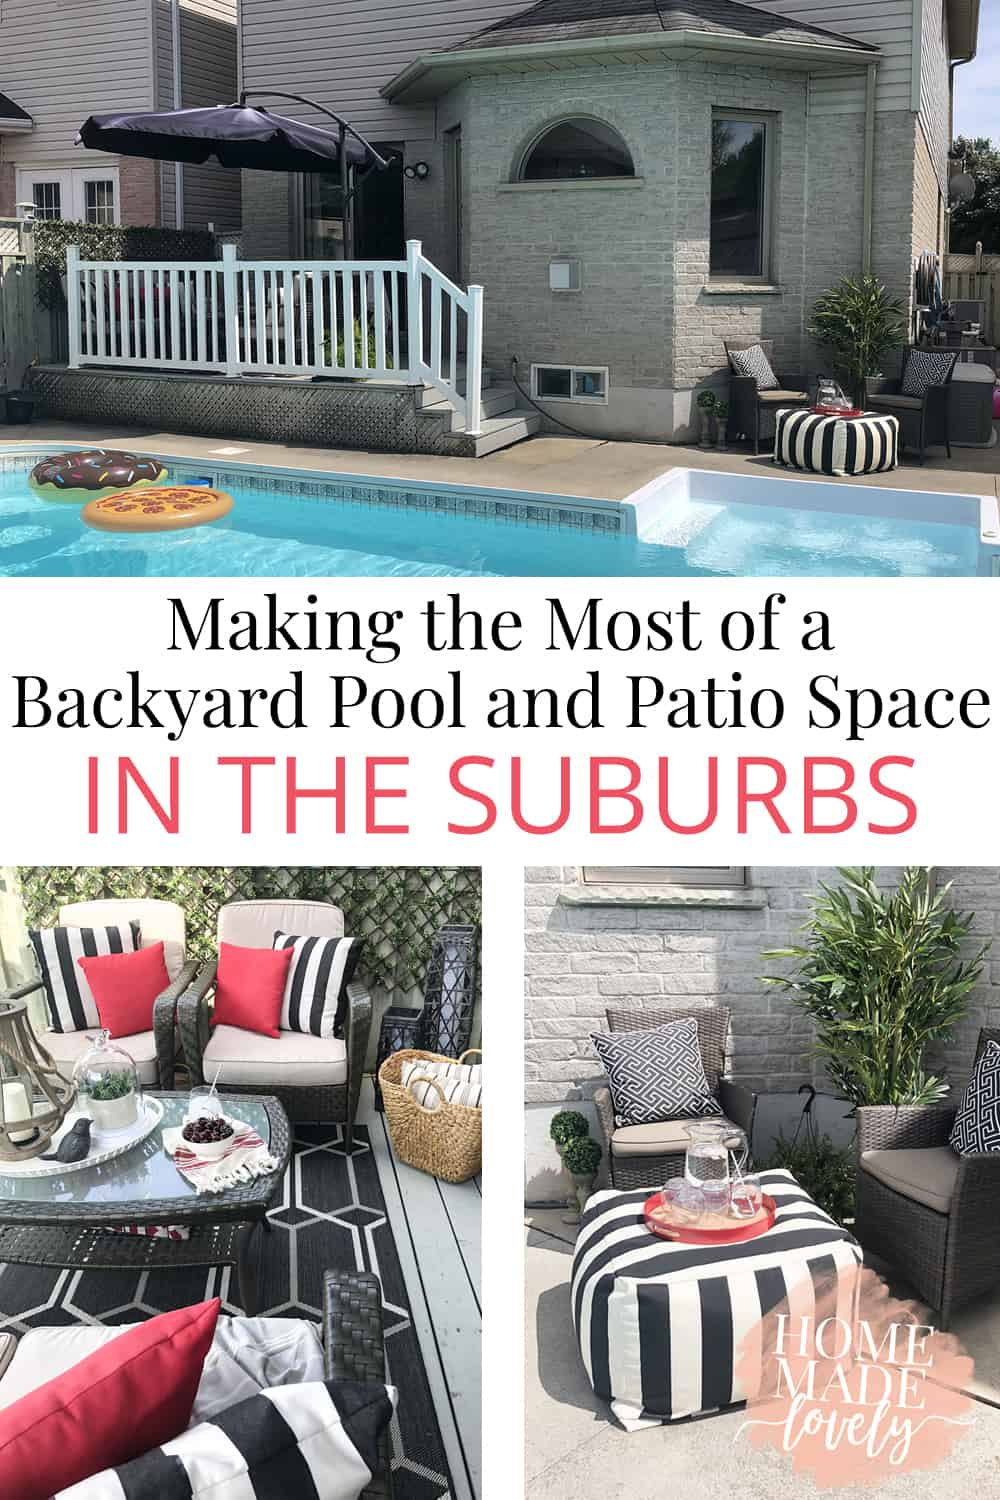 You don't have to have a huge yard to enjoy it! Here's how we're making the most of our suburban backyard pool and patio space this summer. And how you can make the most of your space too.